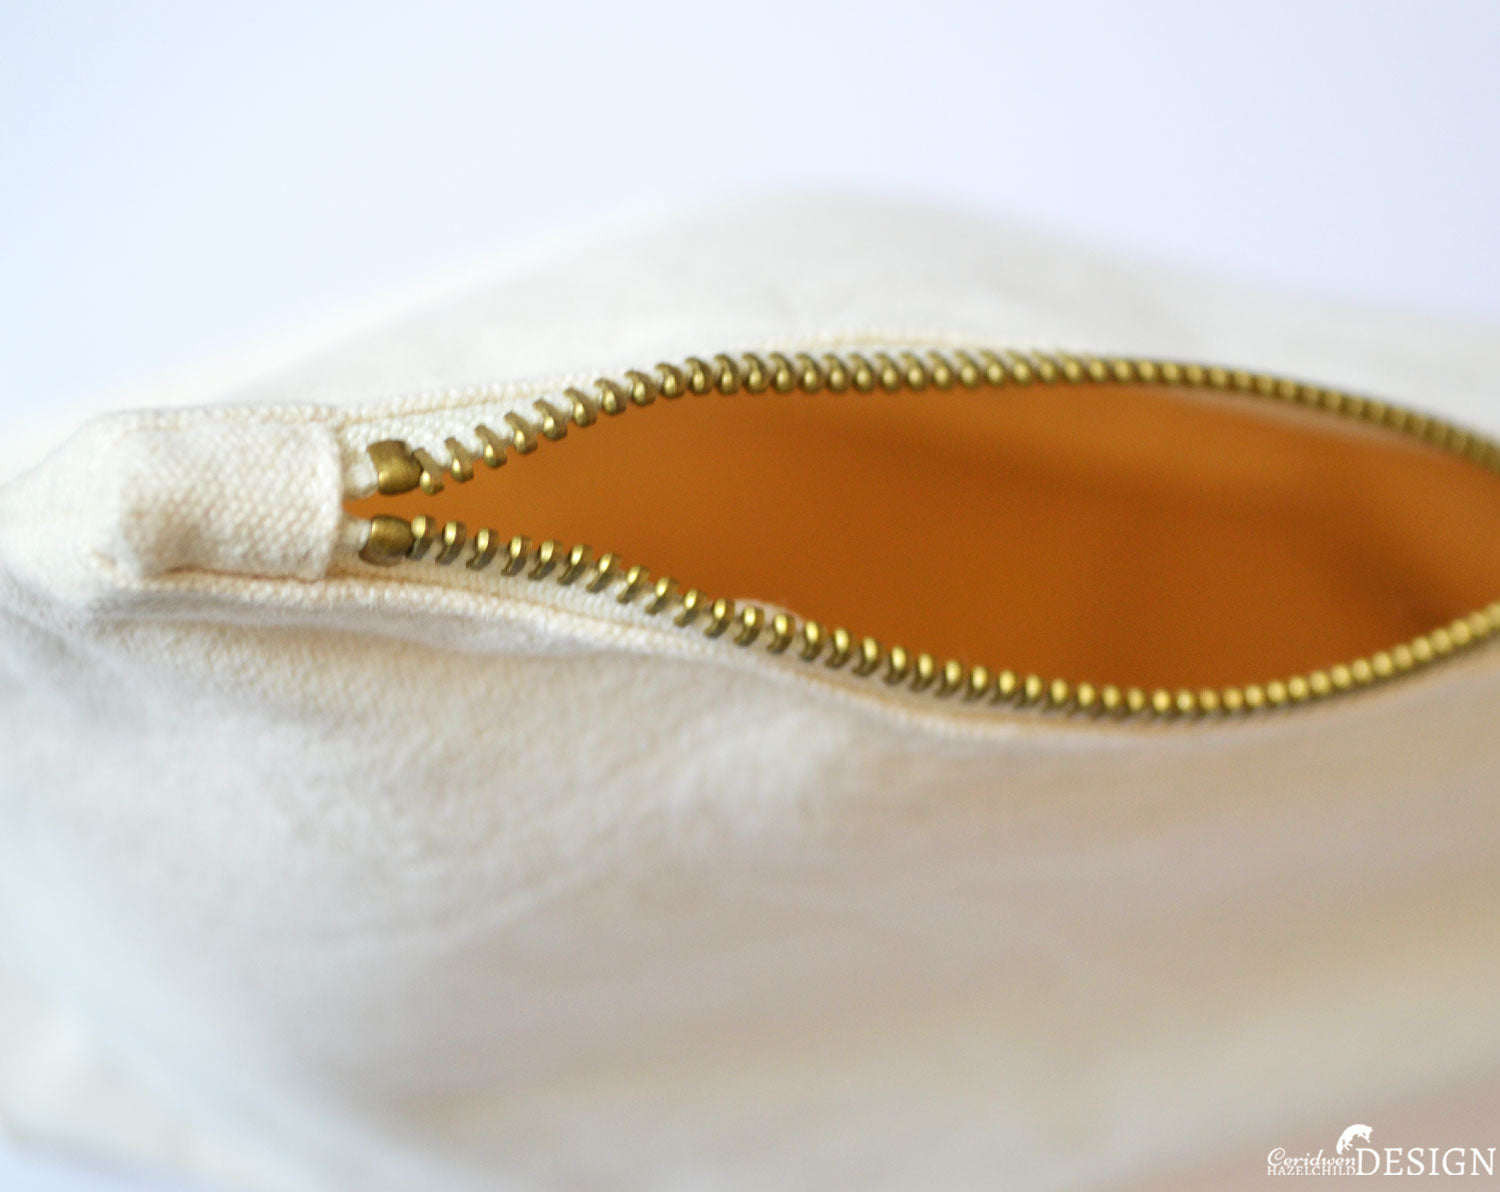 A close-up of a zipper on a canvas wash bag by Ceridwen Hazelchild Design.